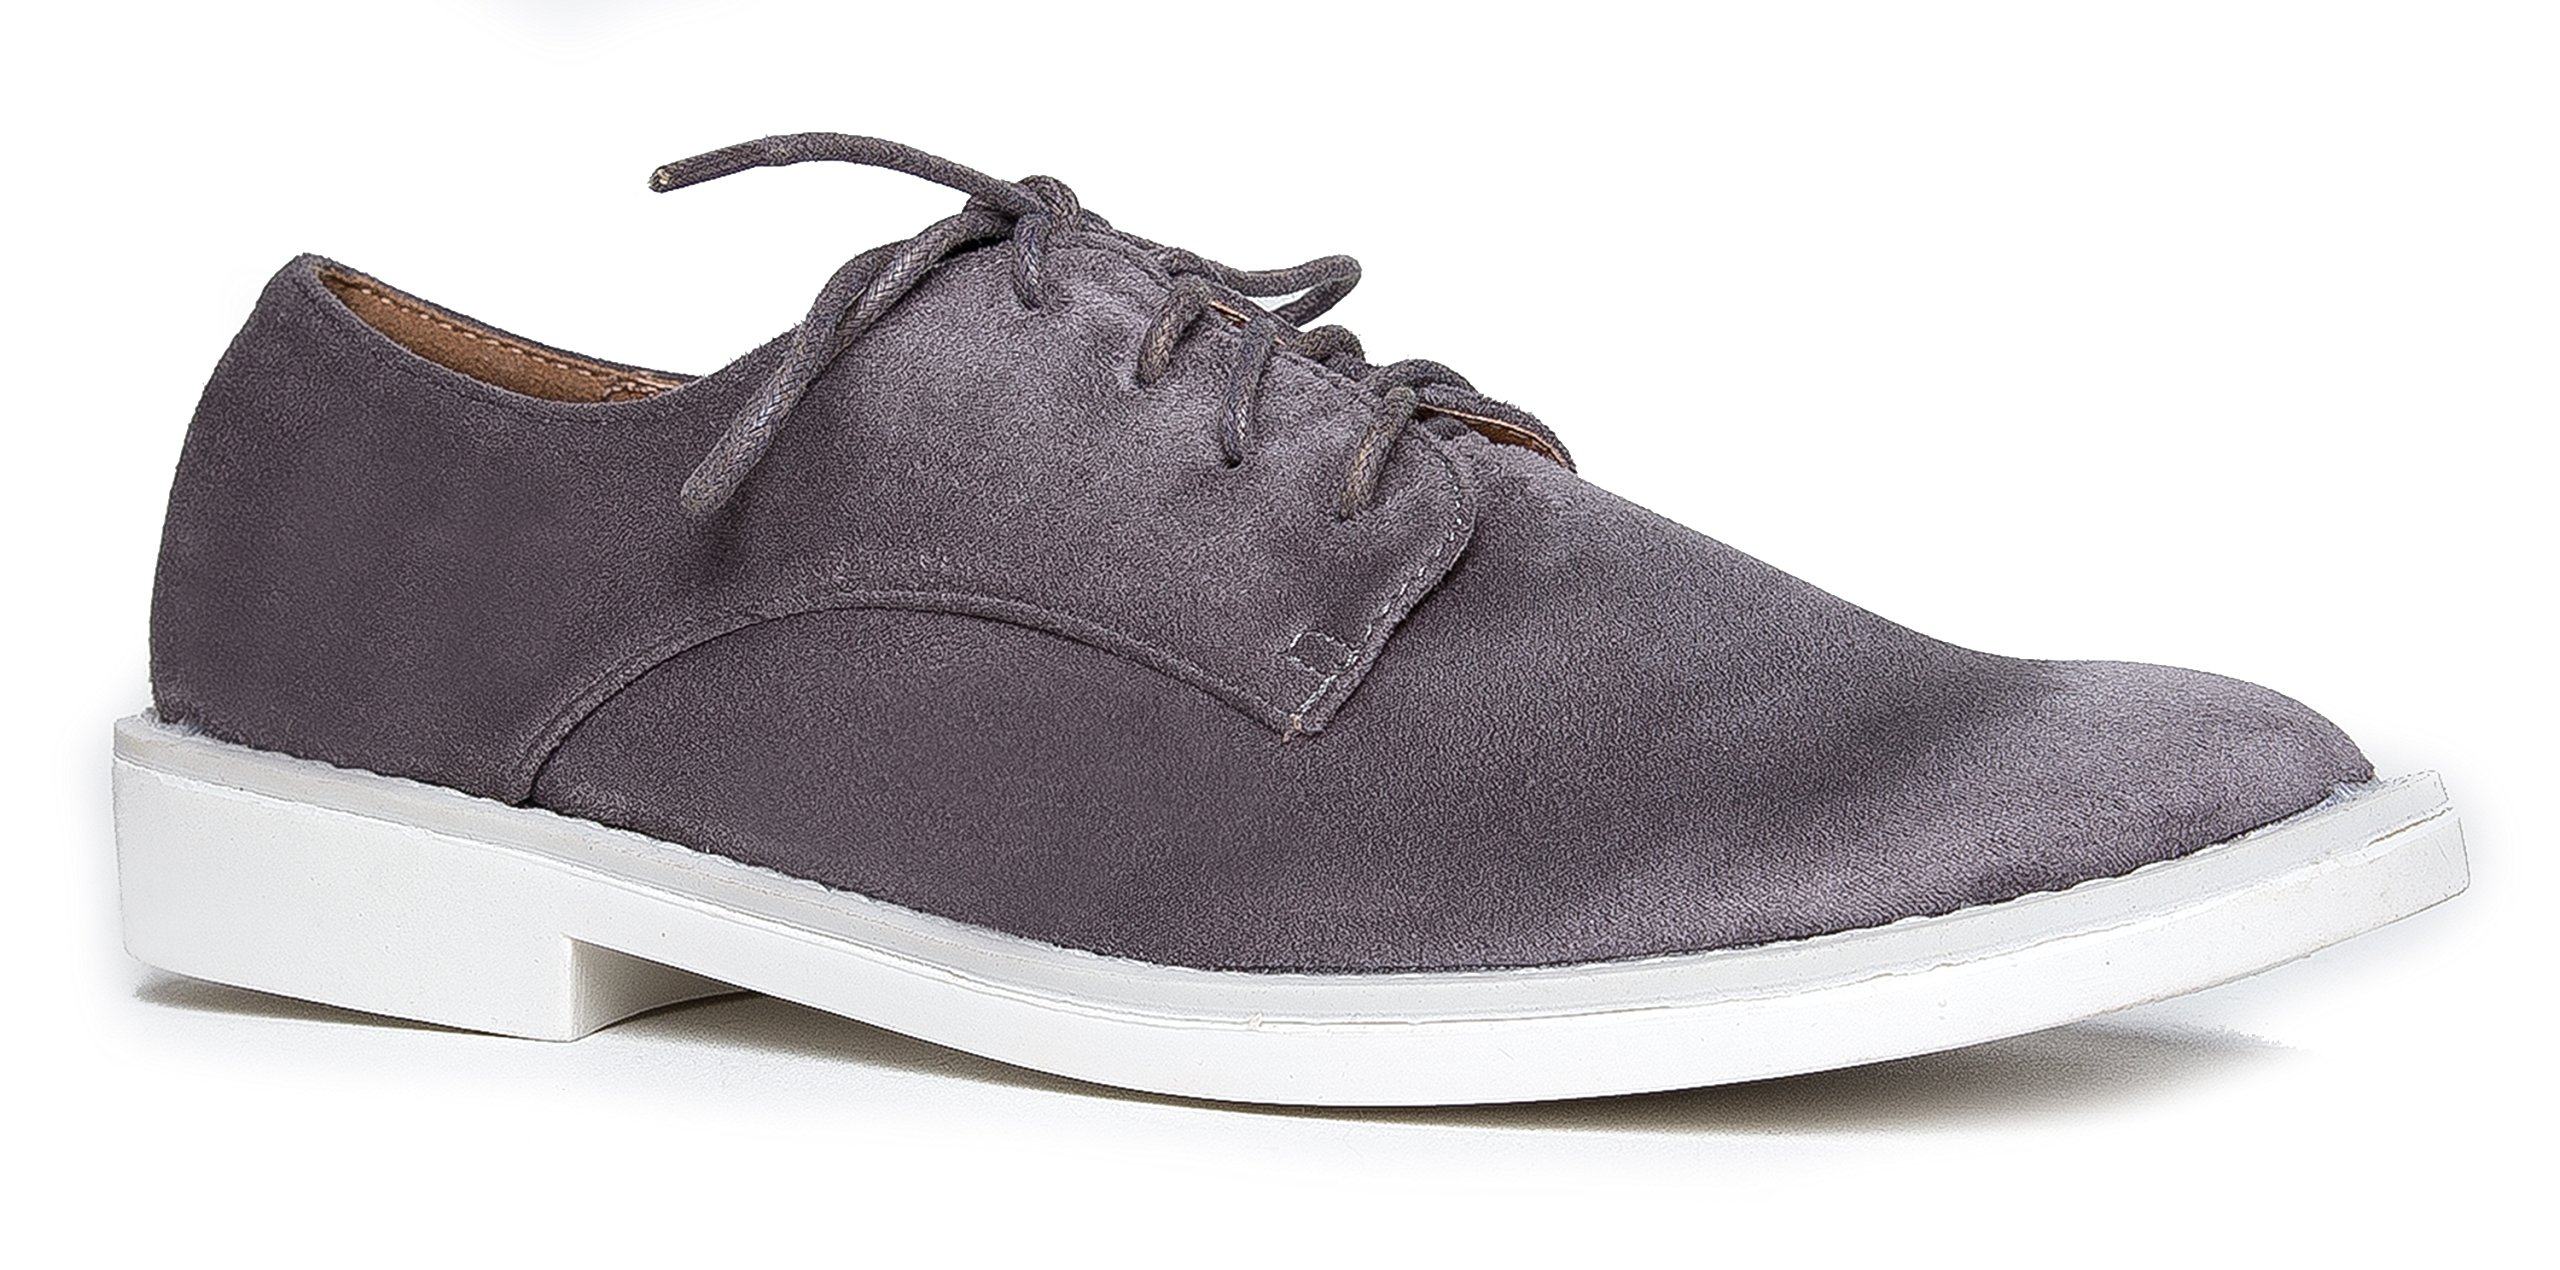 J. Adams Classic Oxford Slip On Shoes – Low Comfortable Lace up Sneakers – Casual Pointed Toe Chunky Heel – Maylor